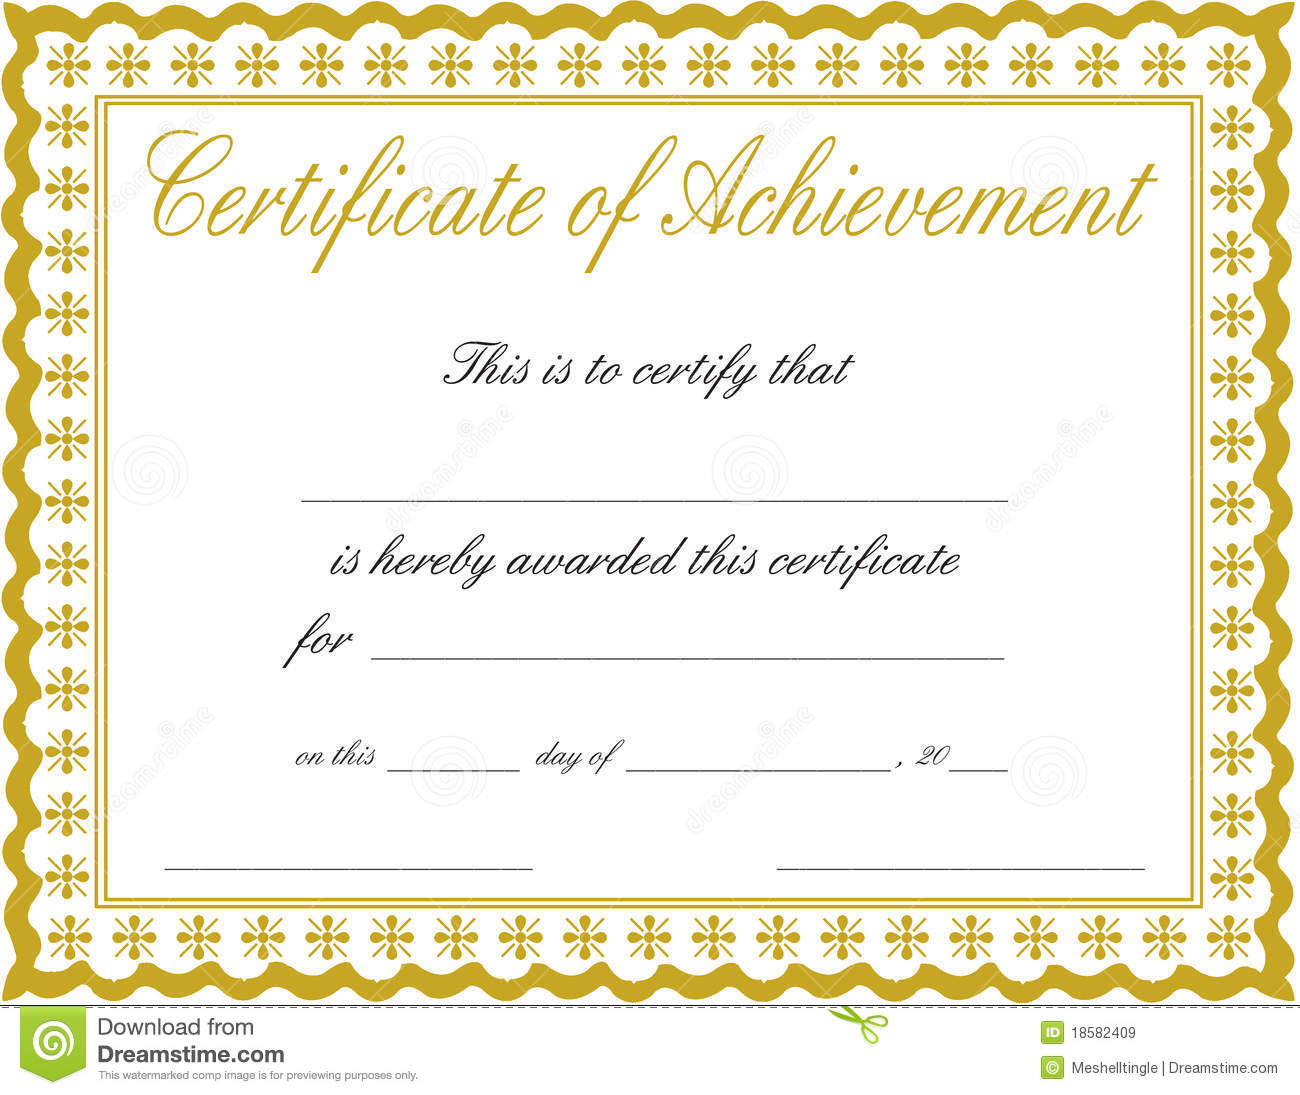 Certificate Of Achievement  Certificate Of Achievement Template